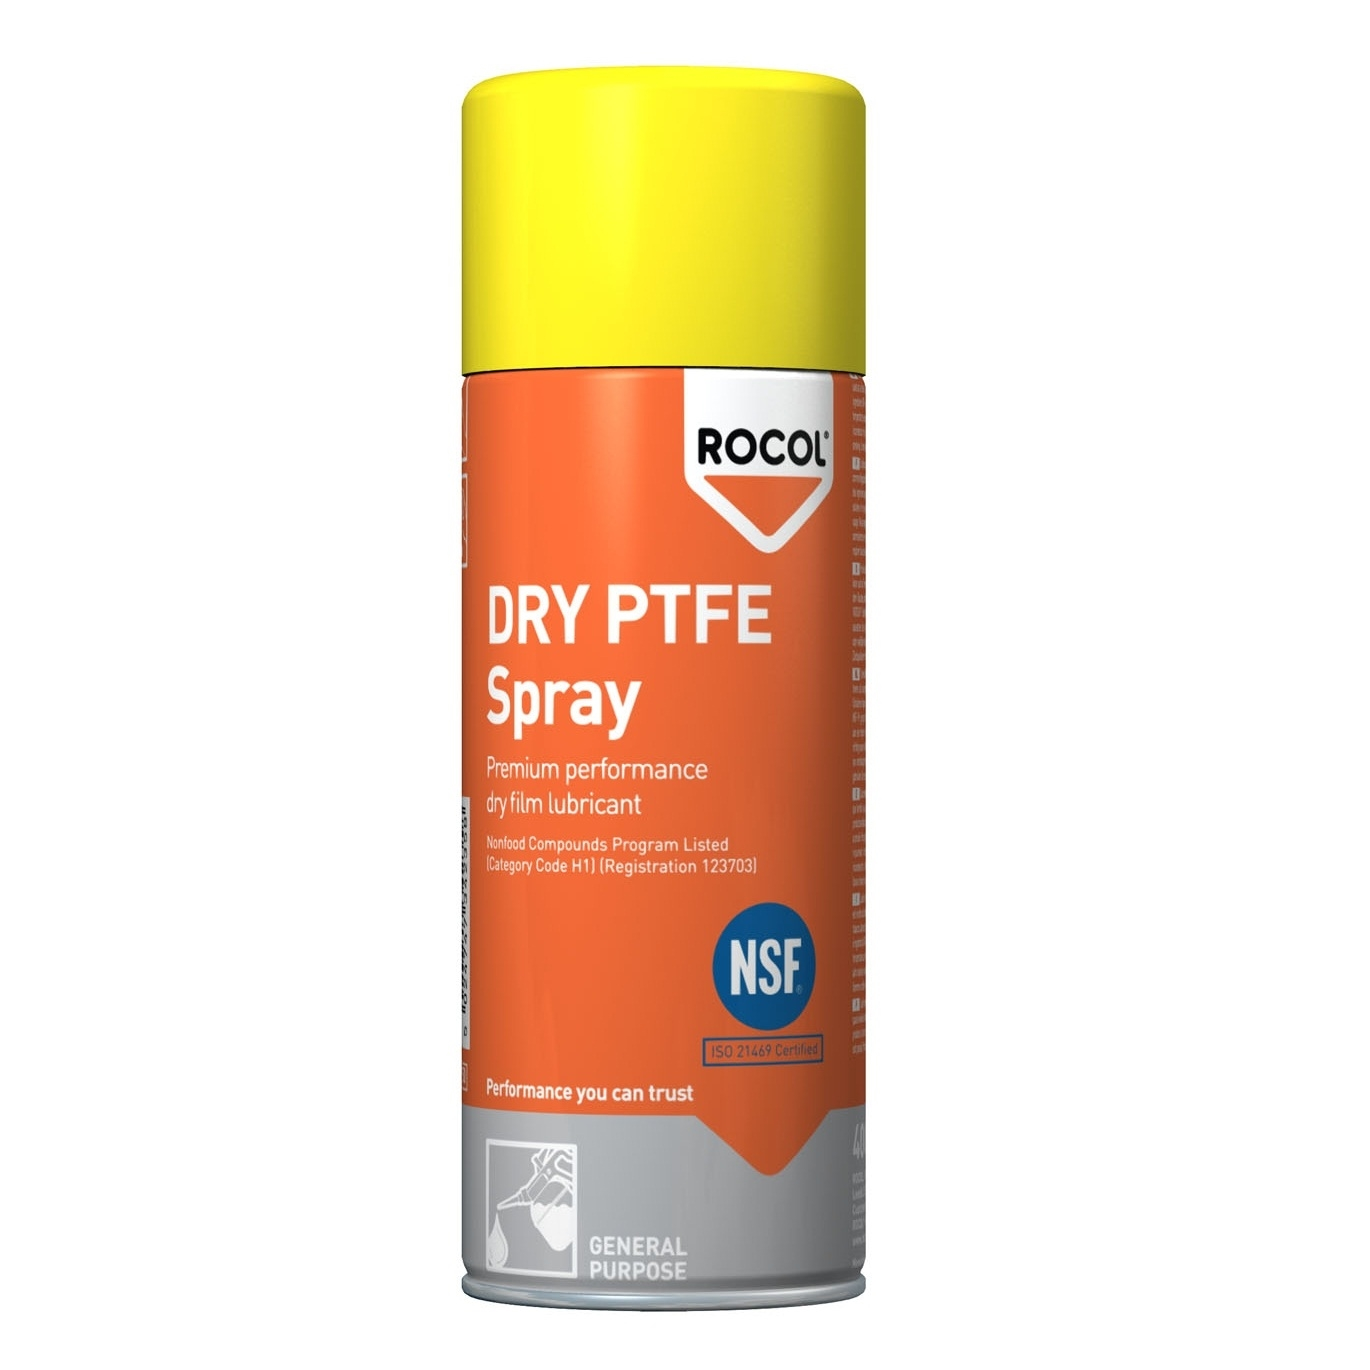 Rocol Dry Ptfe Spray (ifl) 34235 400ml